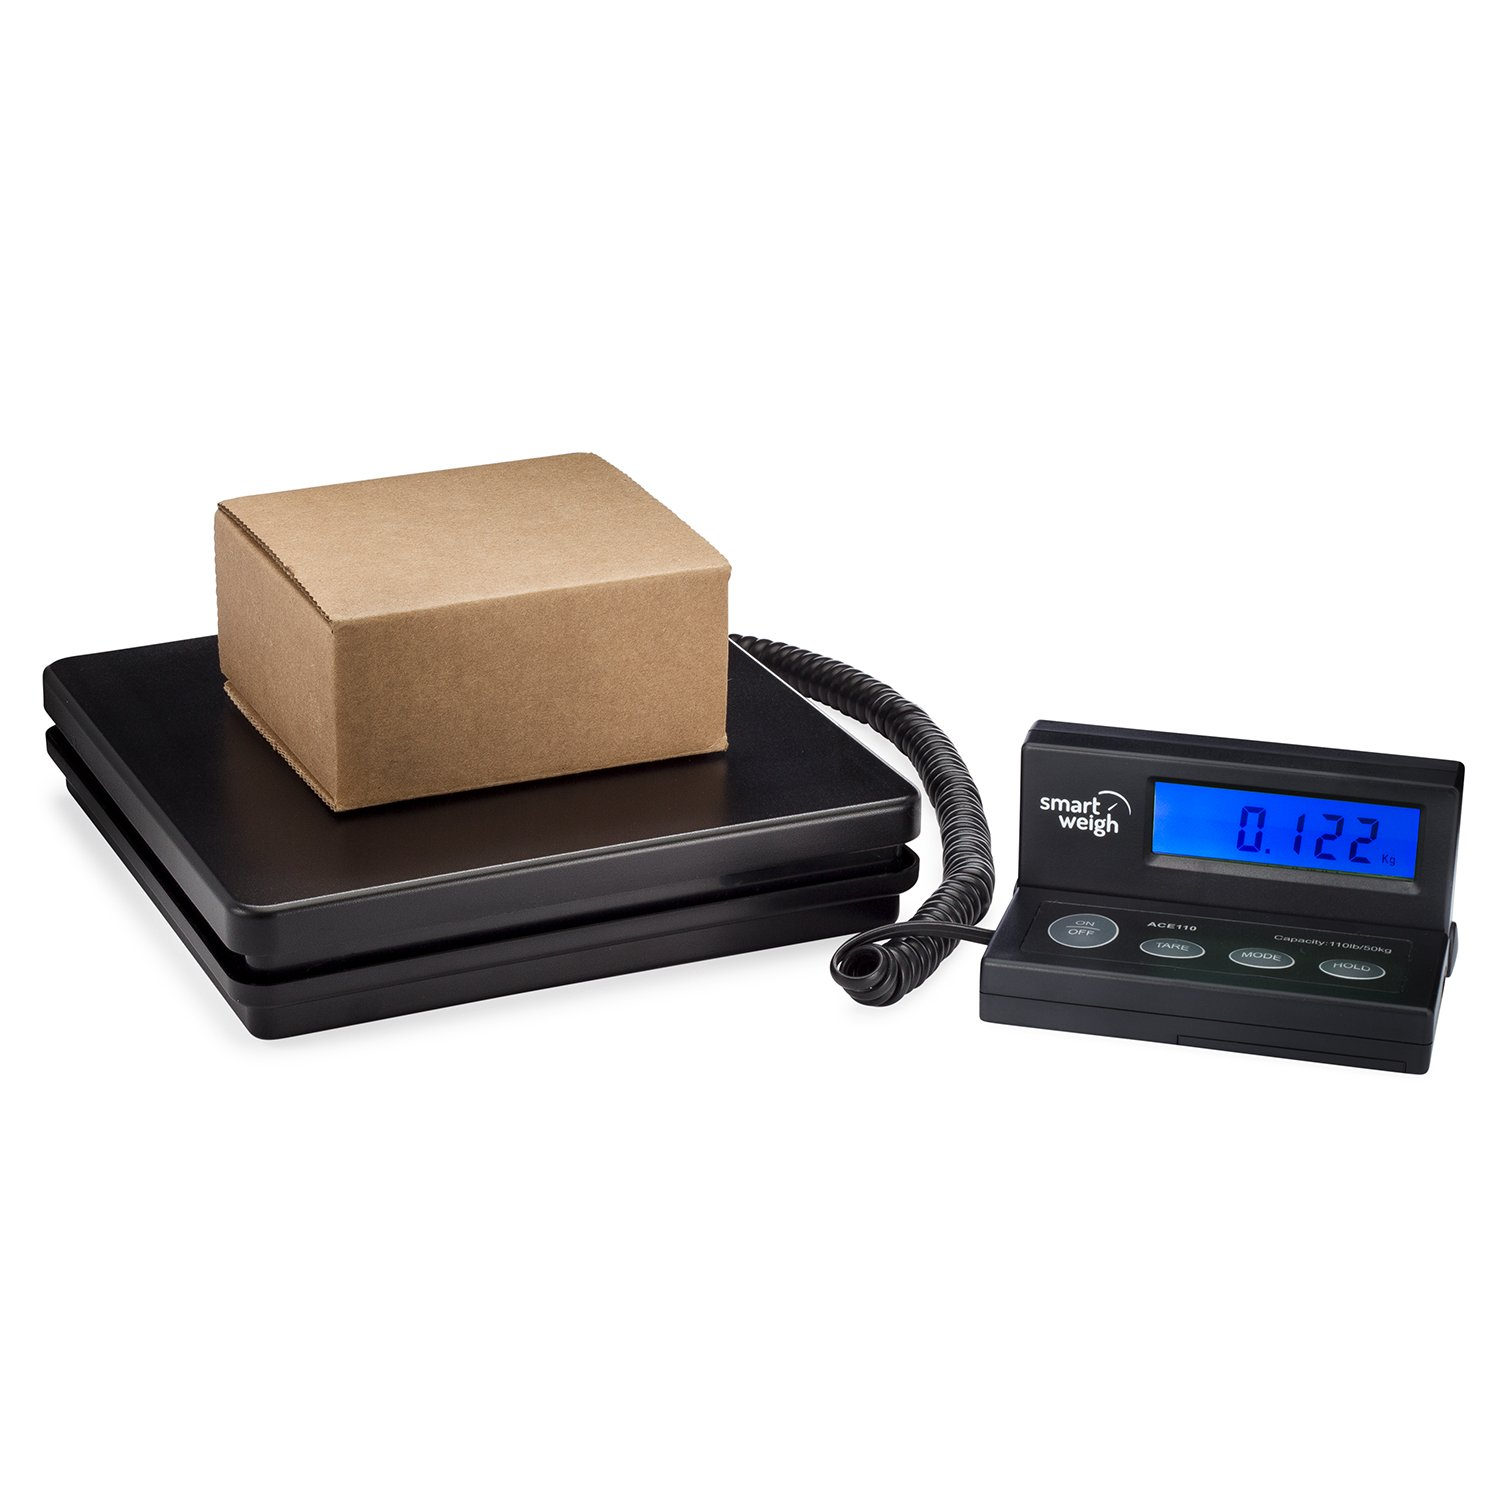 Smart Weigh Digital Shipping and Postal Weight Scale, 110 lbs x 0.1 oz, UPS USPS Post Office Scale